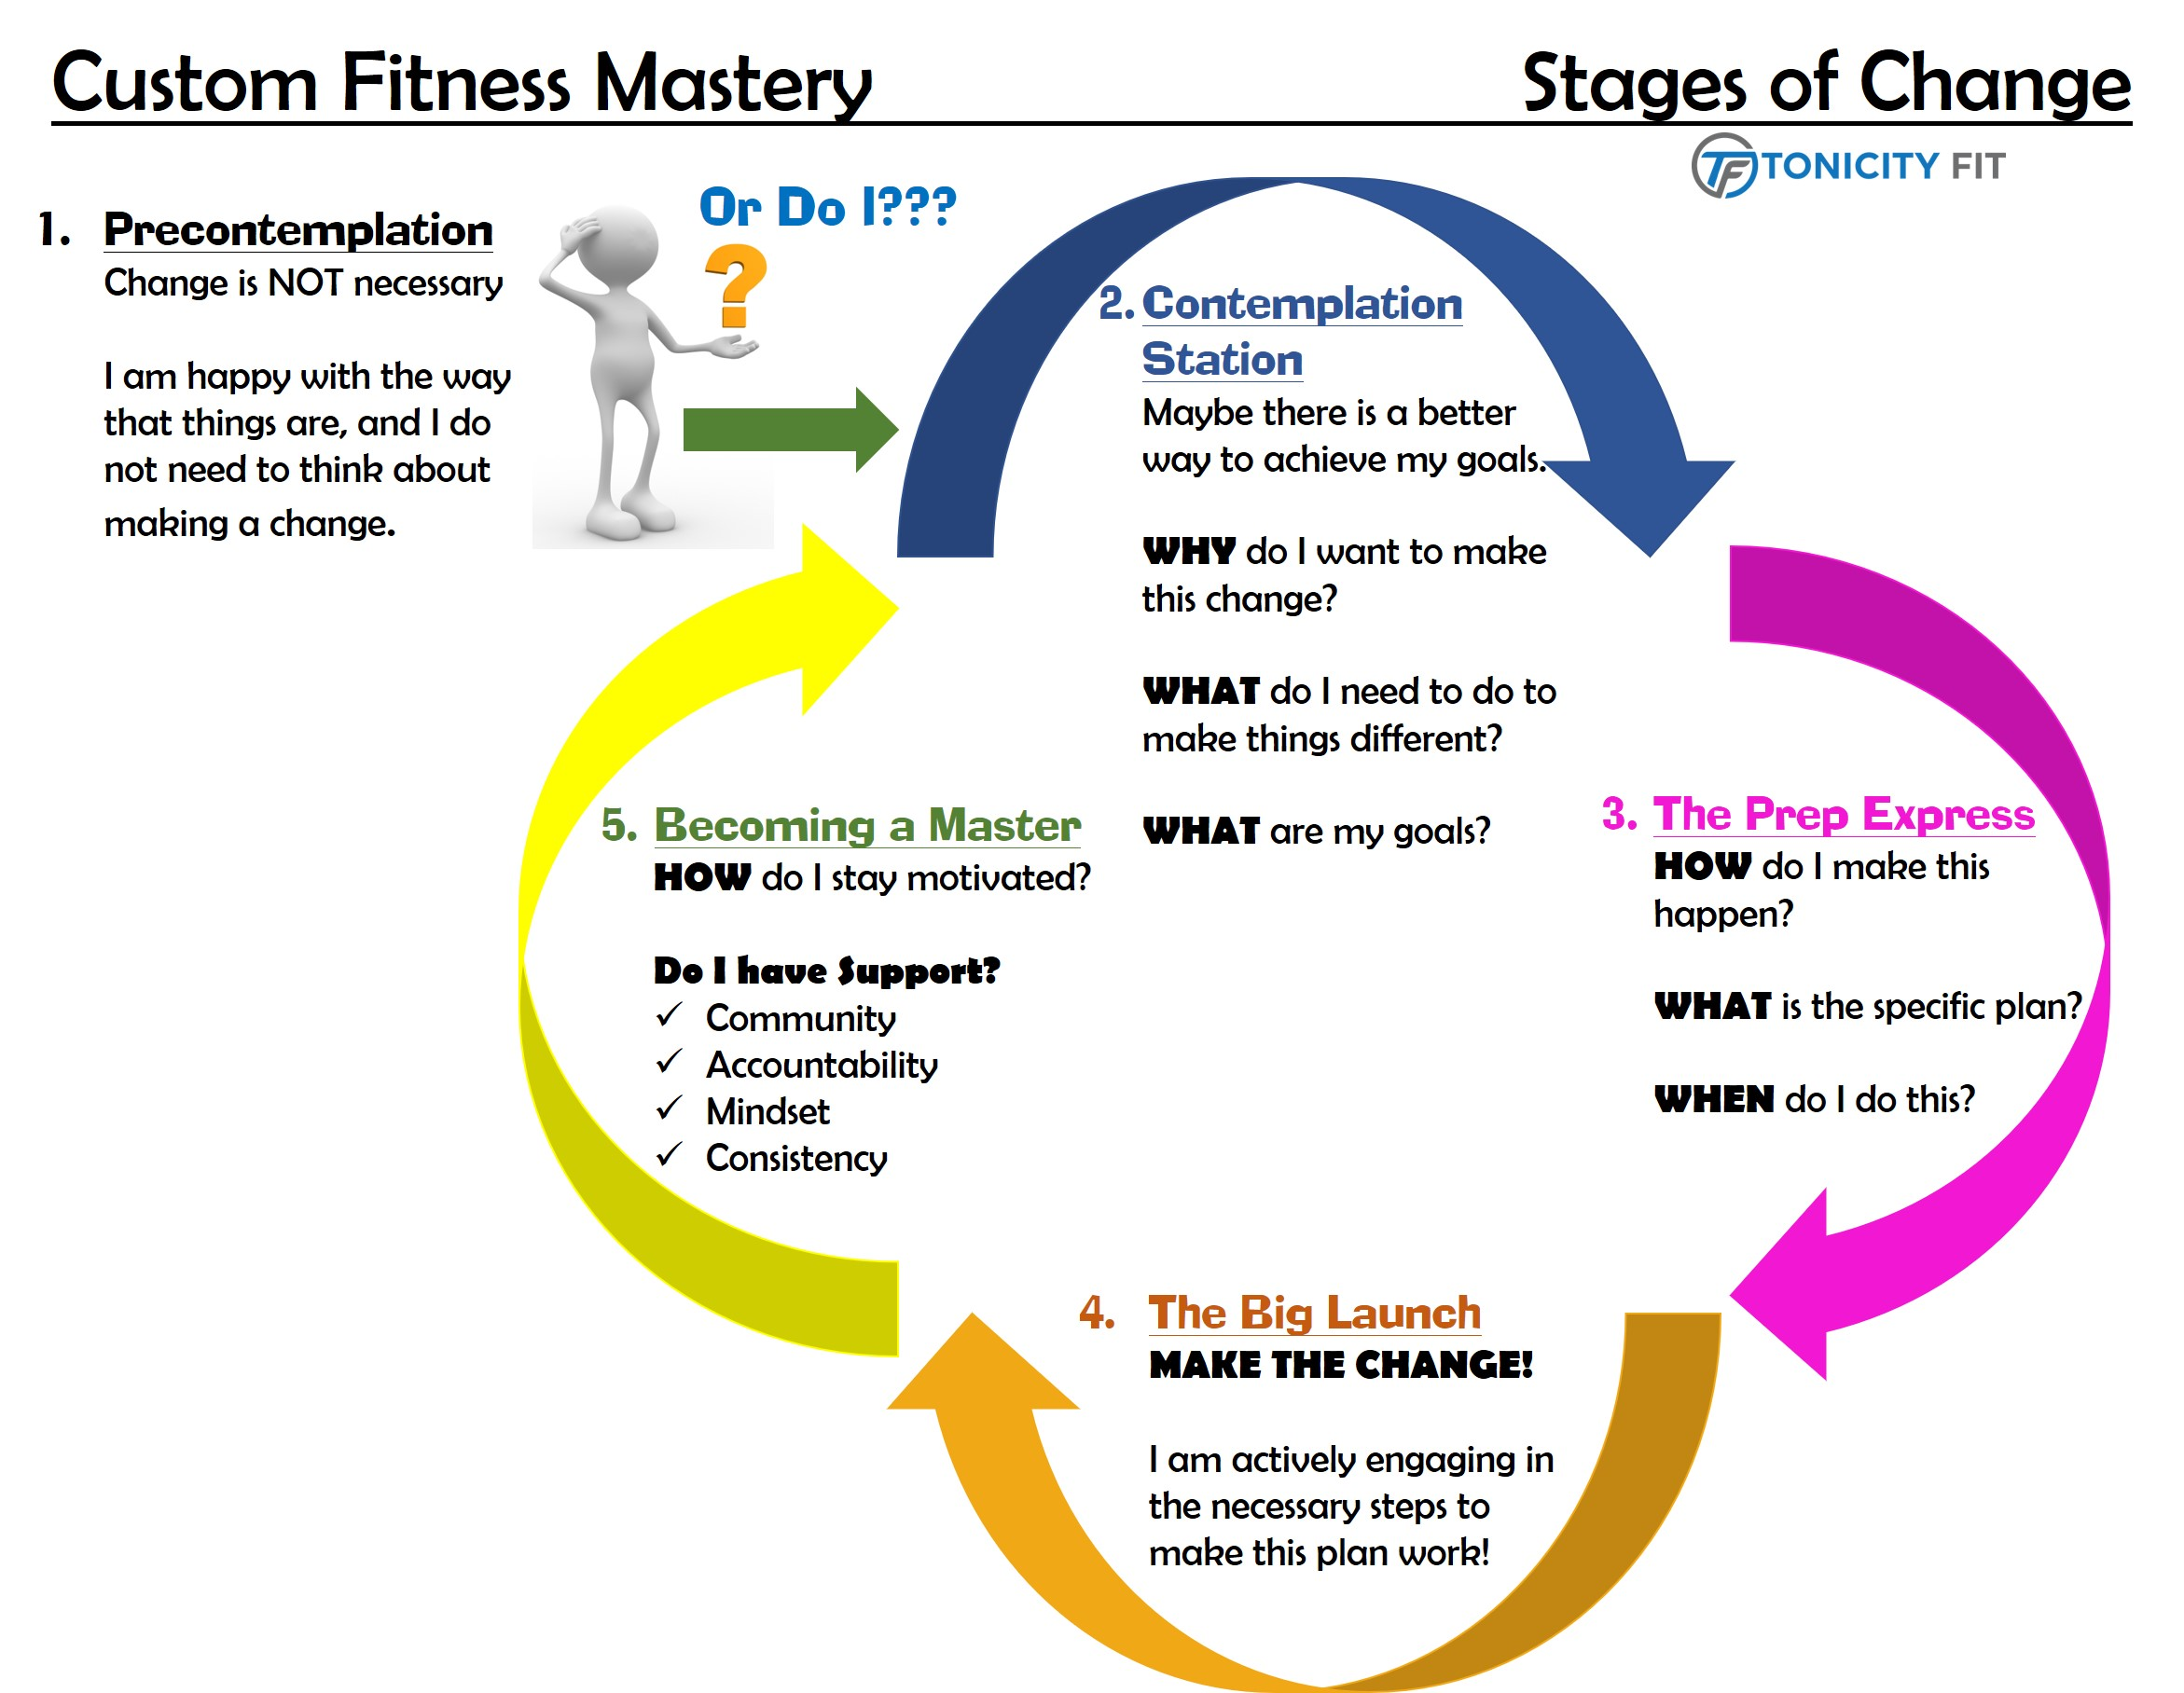 Tonicity Fit Personal Training Studio Custom Fitness Mastery West Chester Pennsylvania